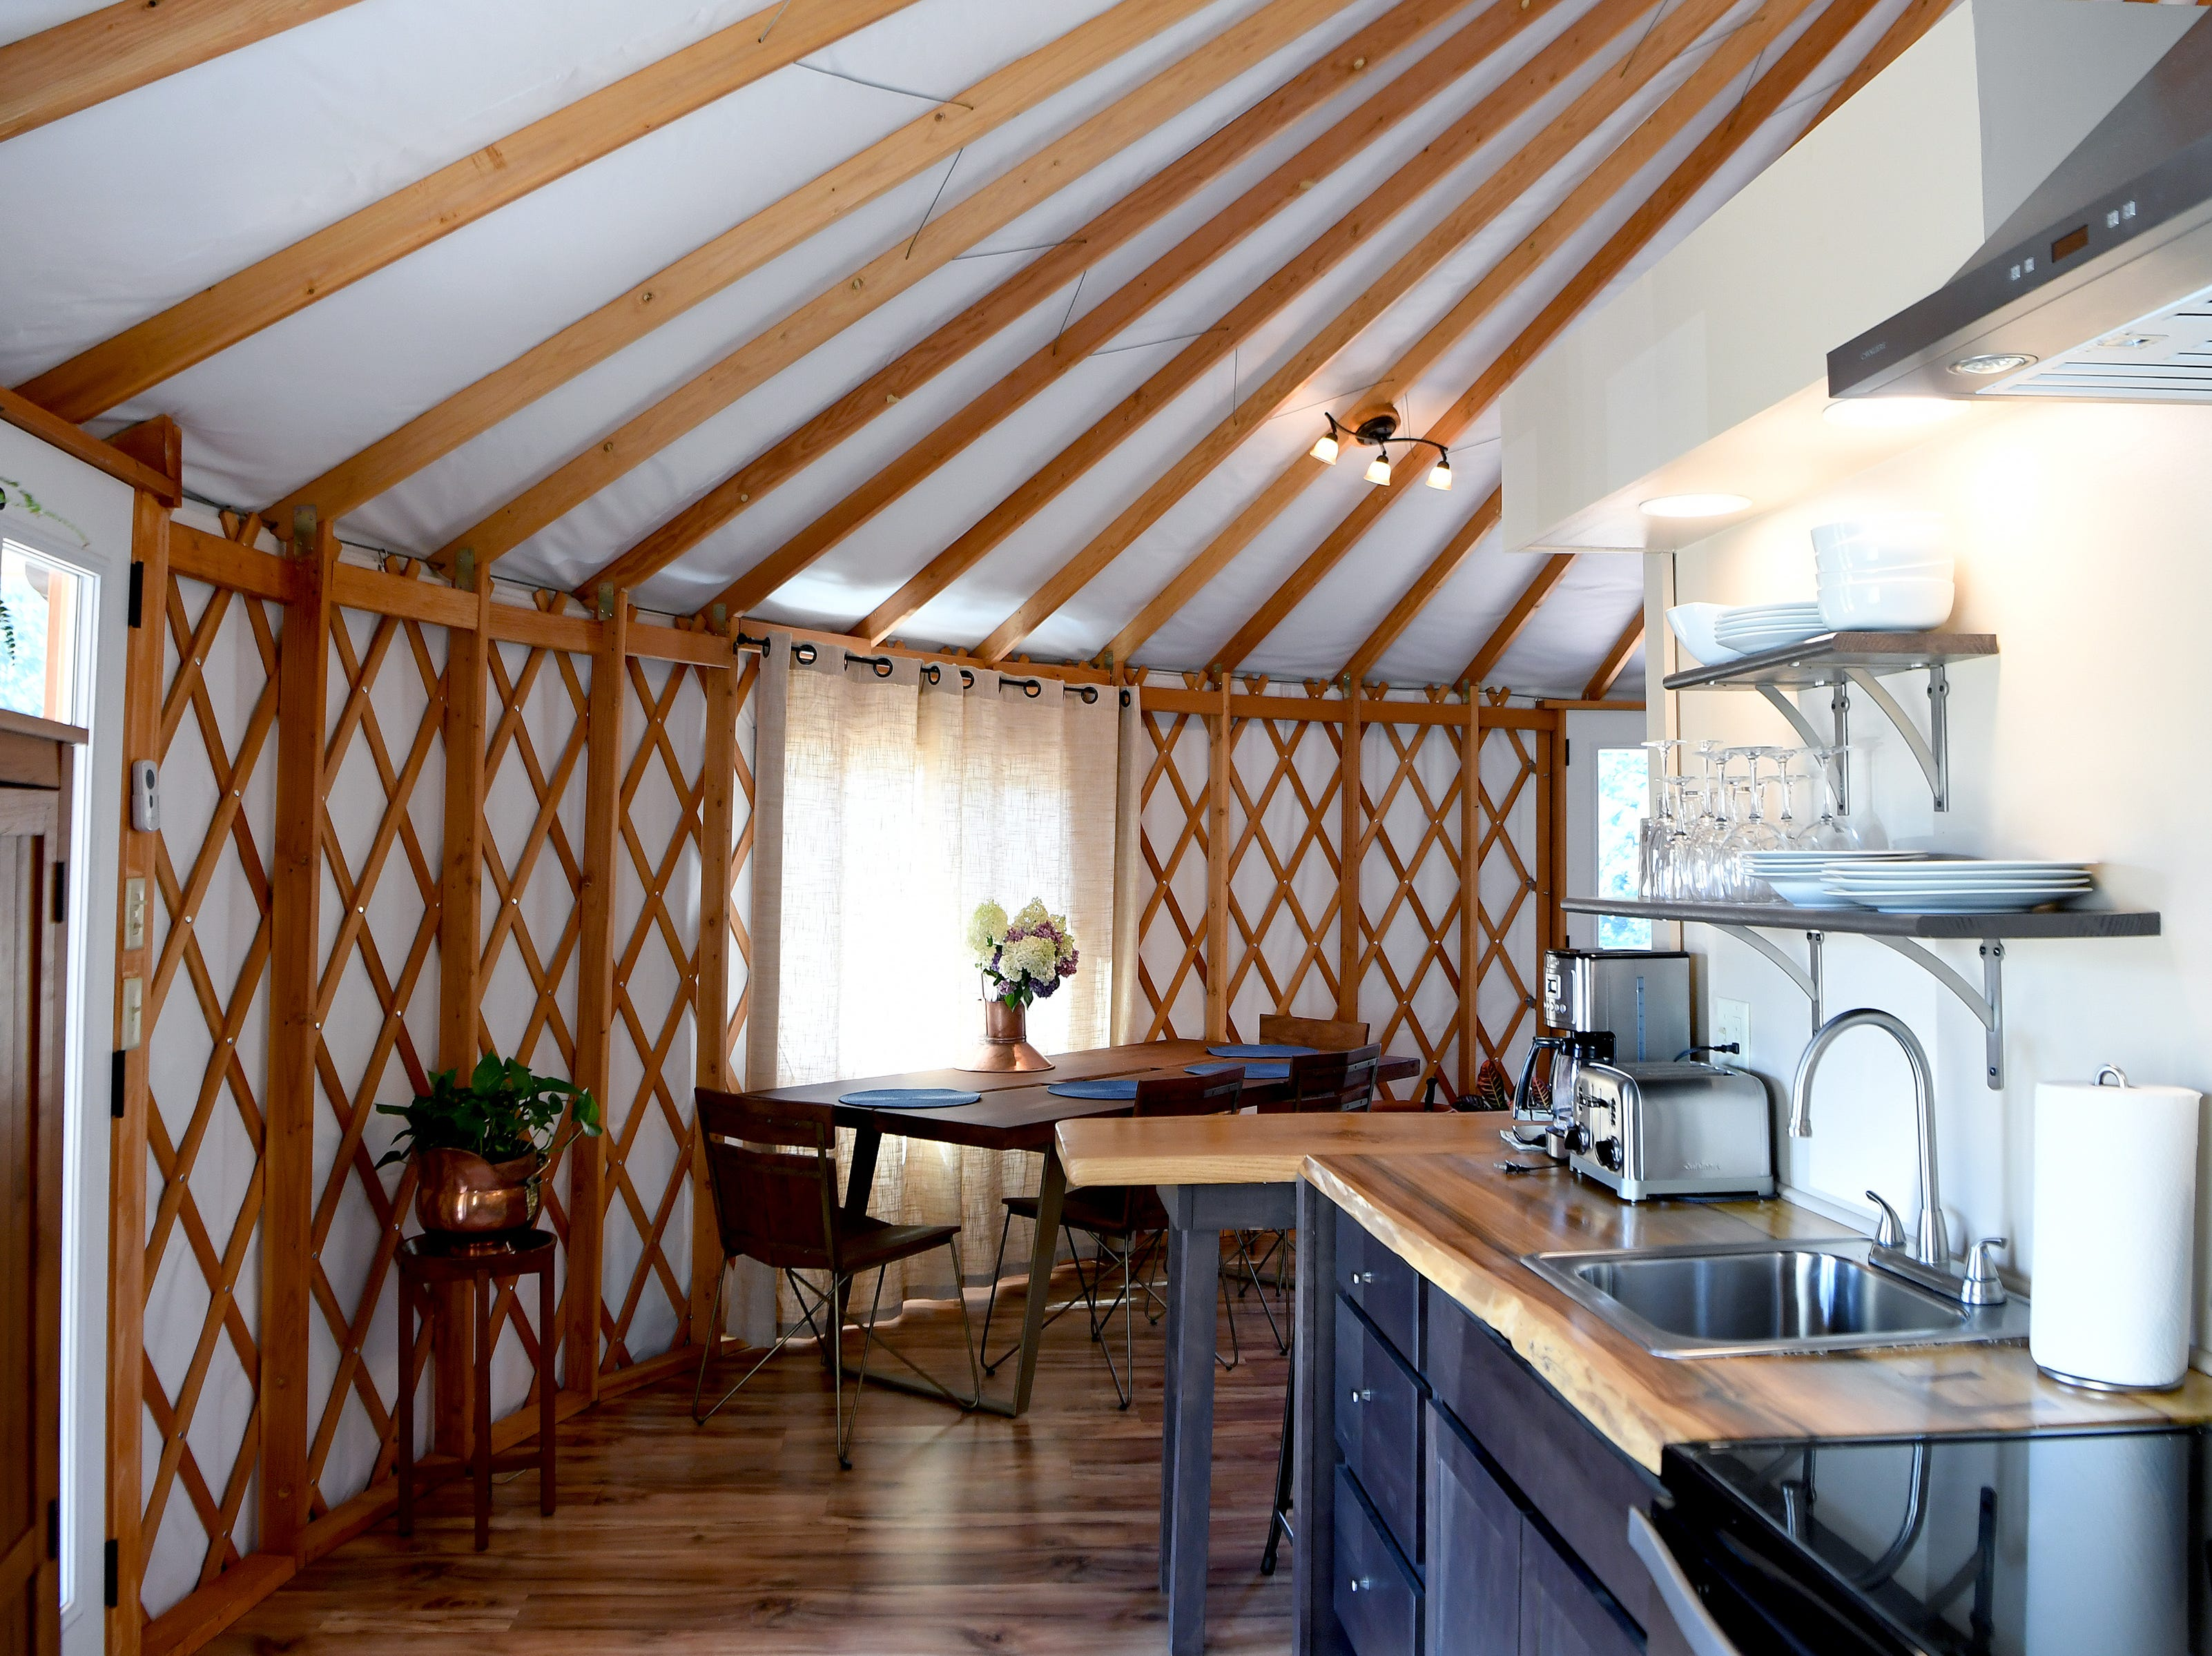 The kitchen of the Yin Yurt, an AirBnB rental on Ricardo Fernandez's property in Clyde.